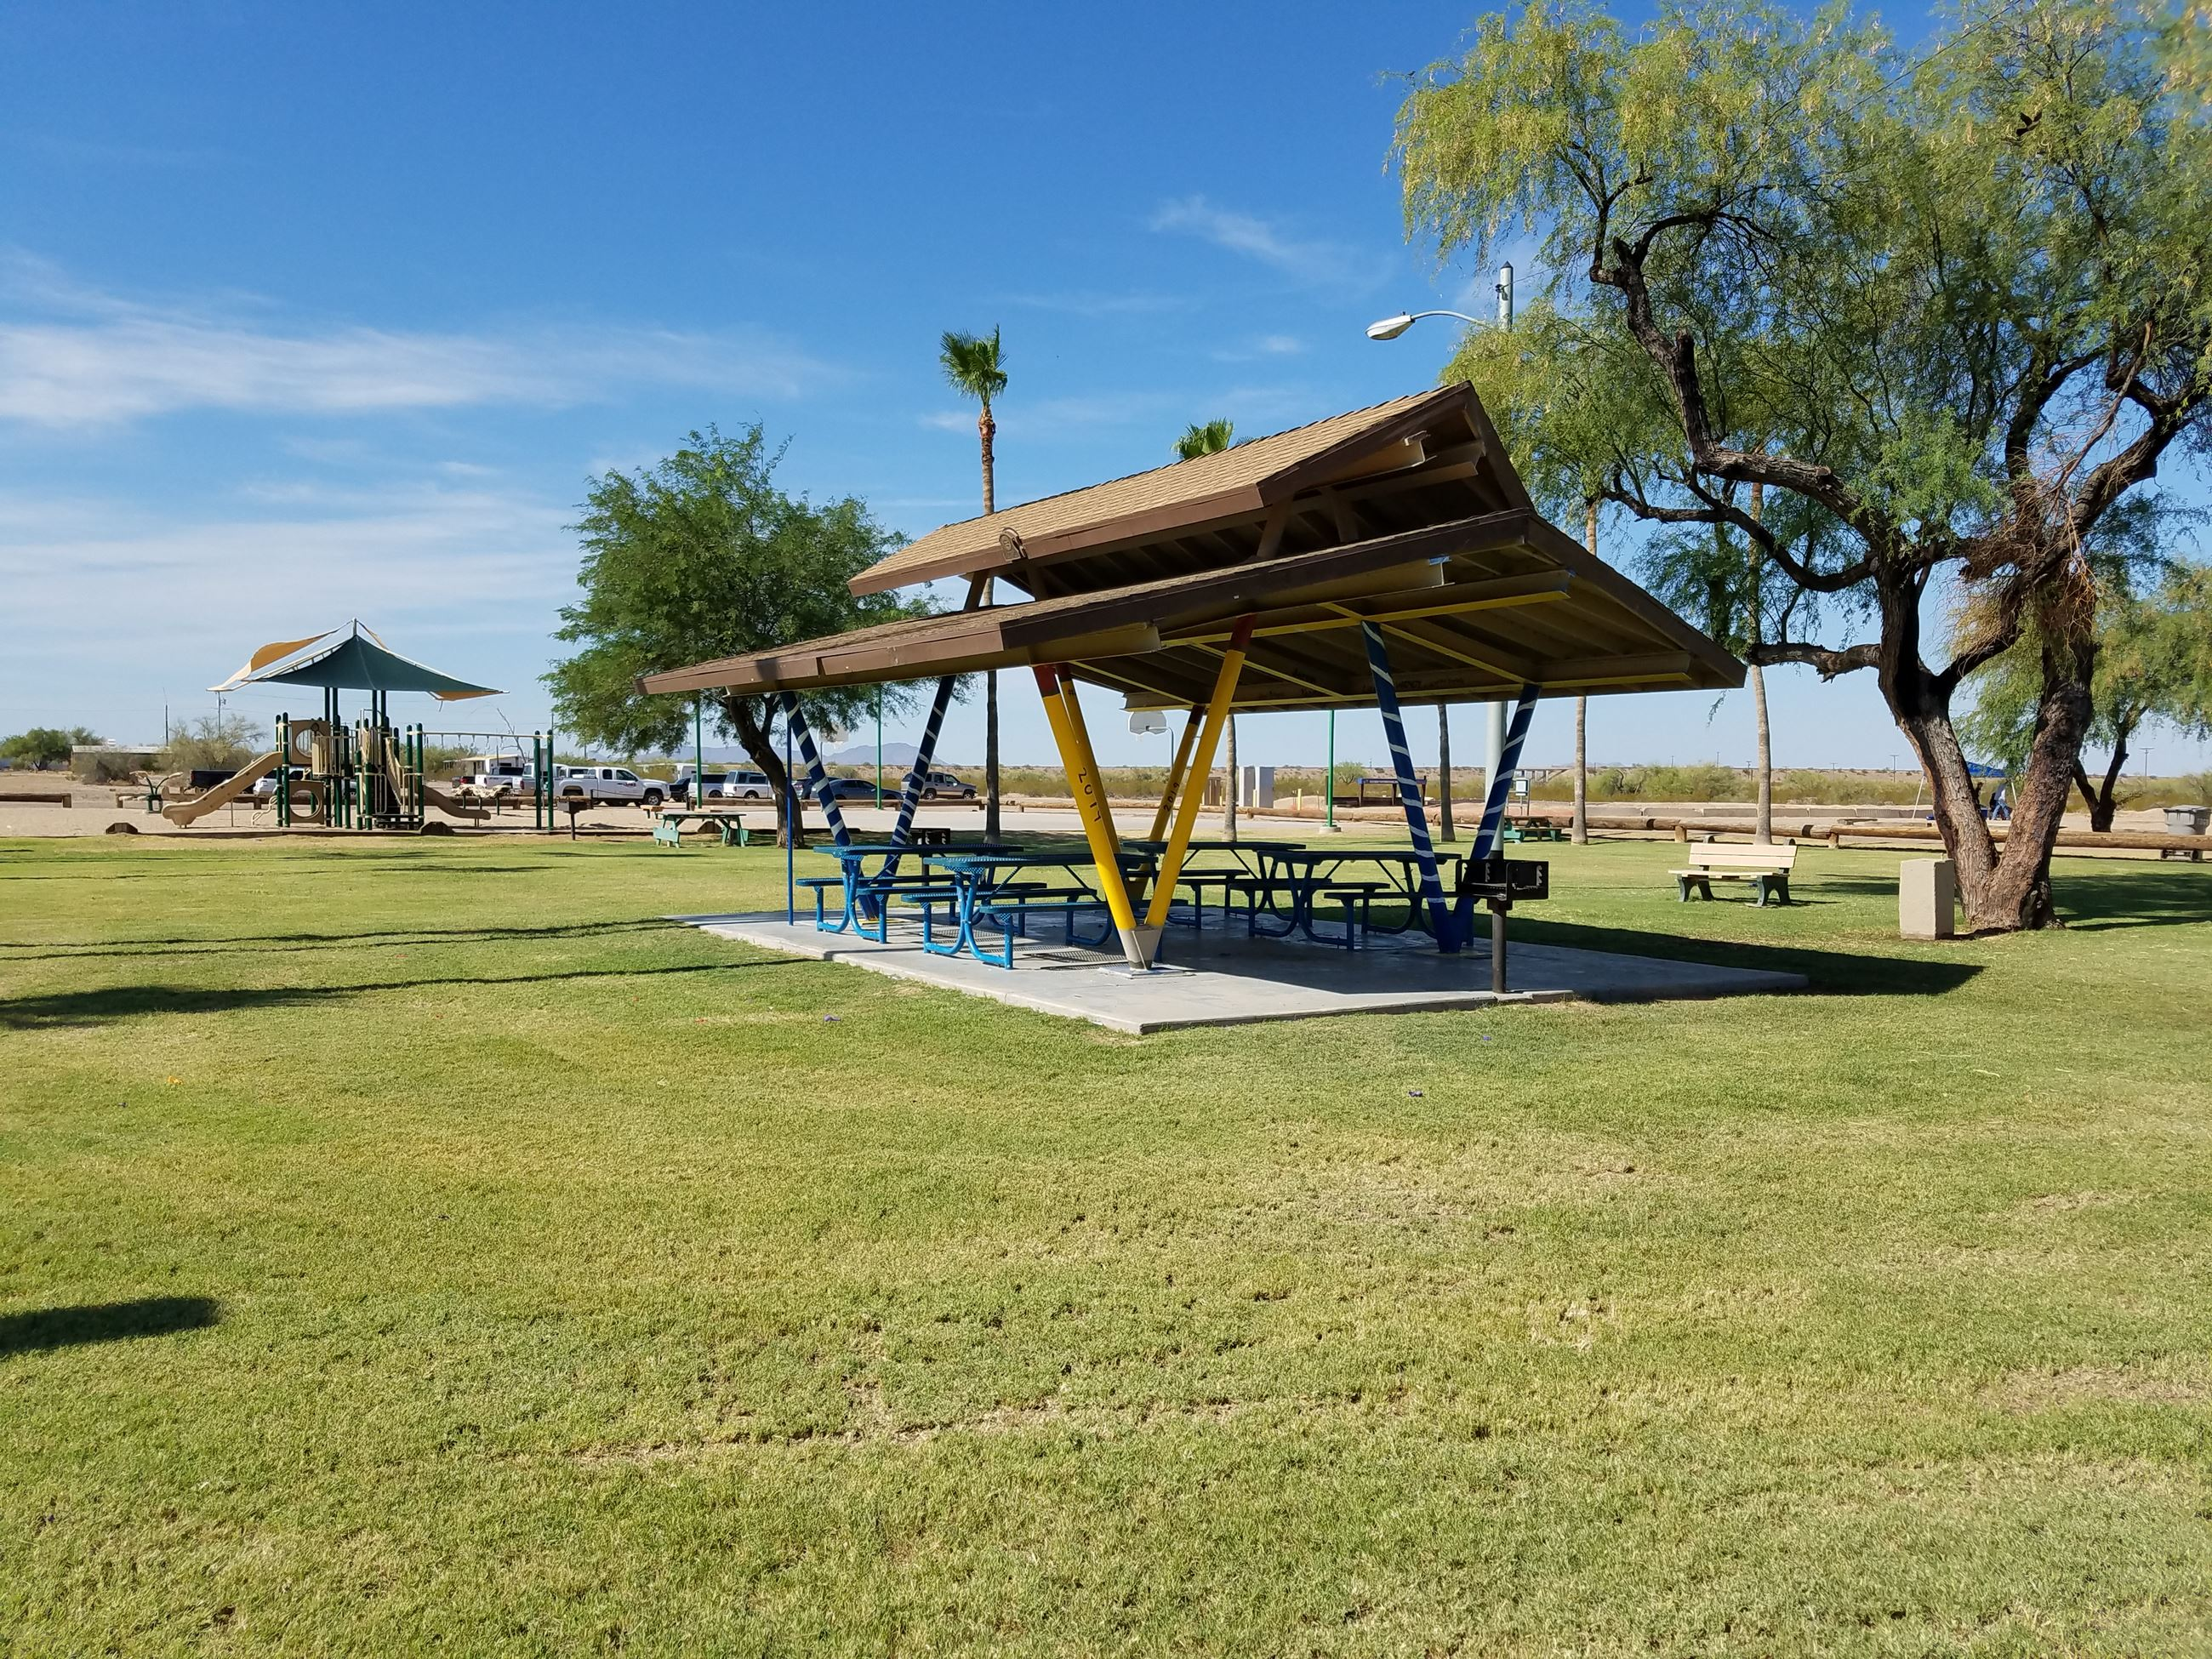 Ramada with playground in distance and grassy field at Gila Bend Rotary Park